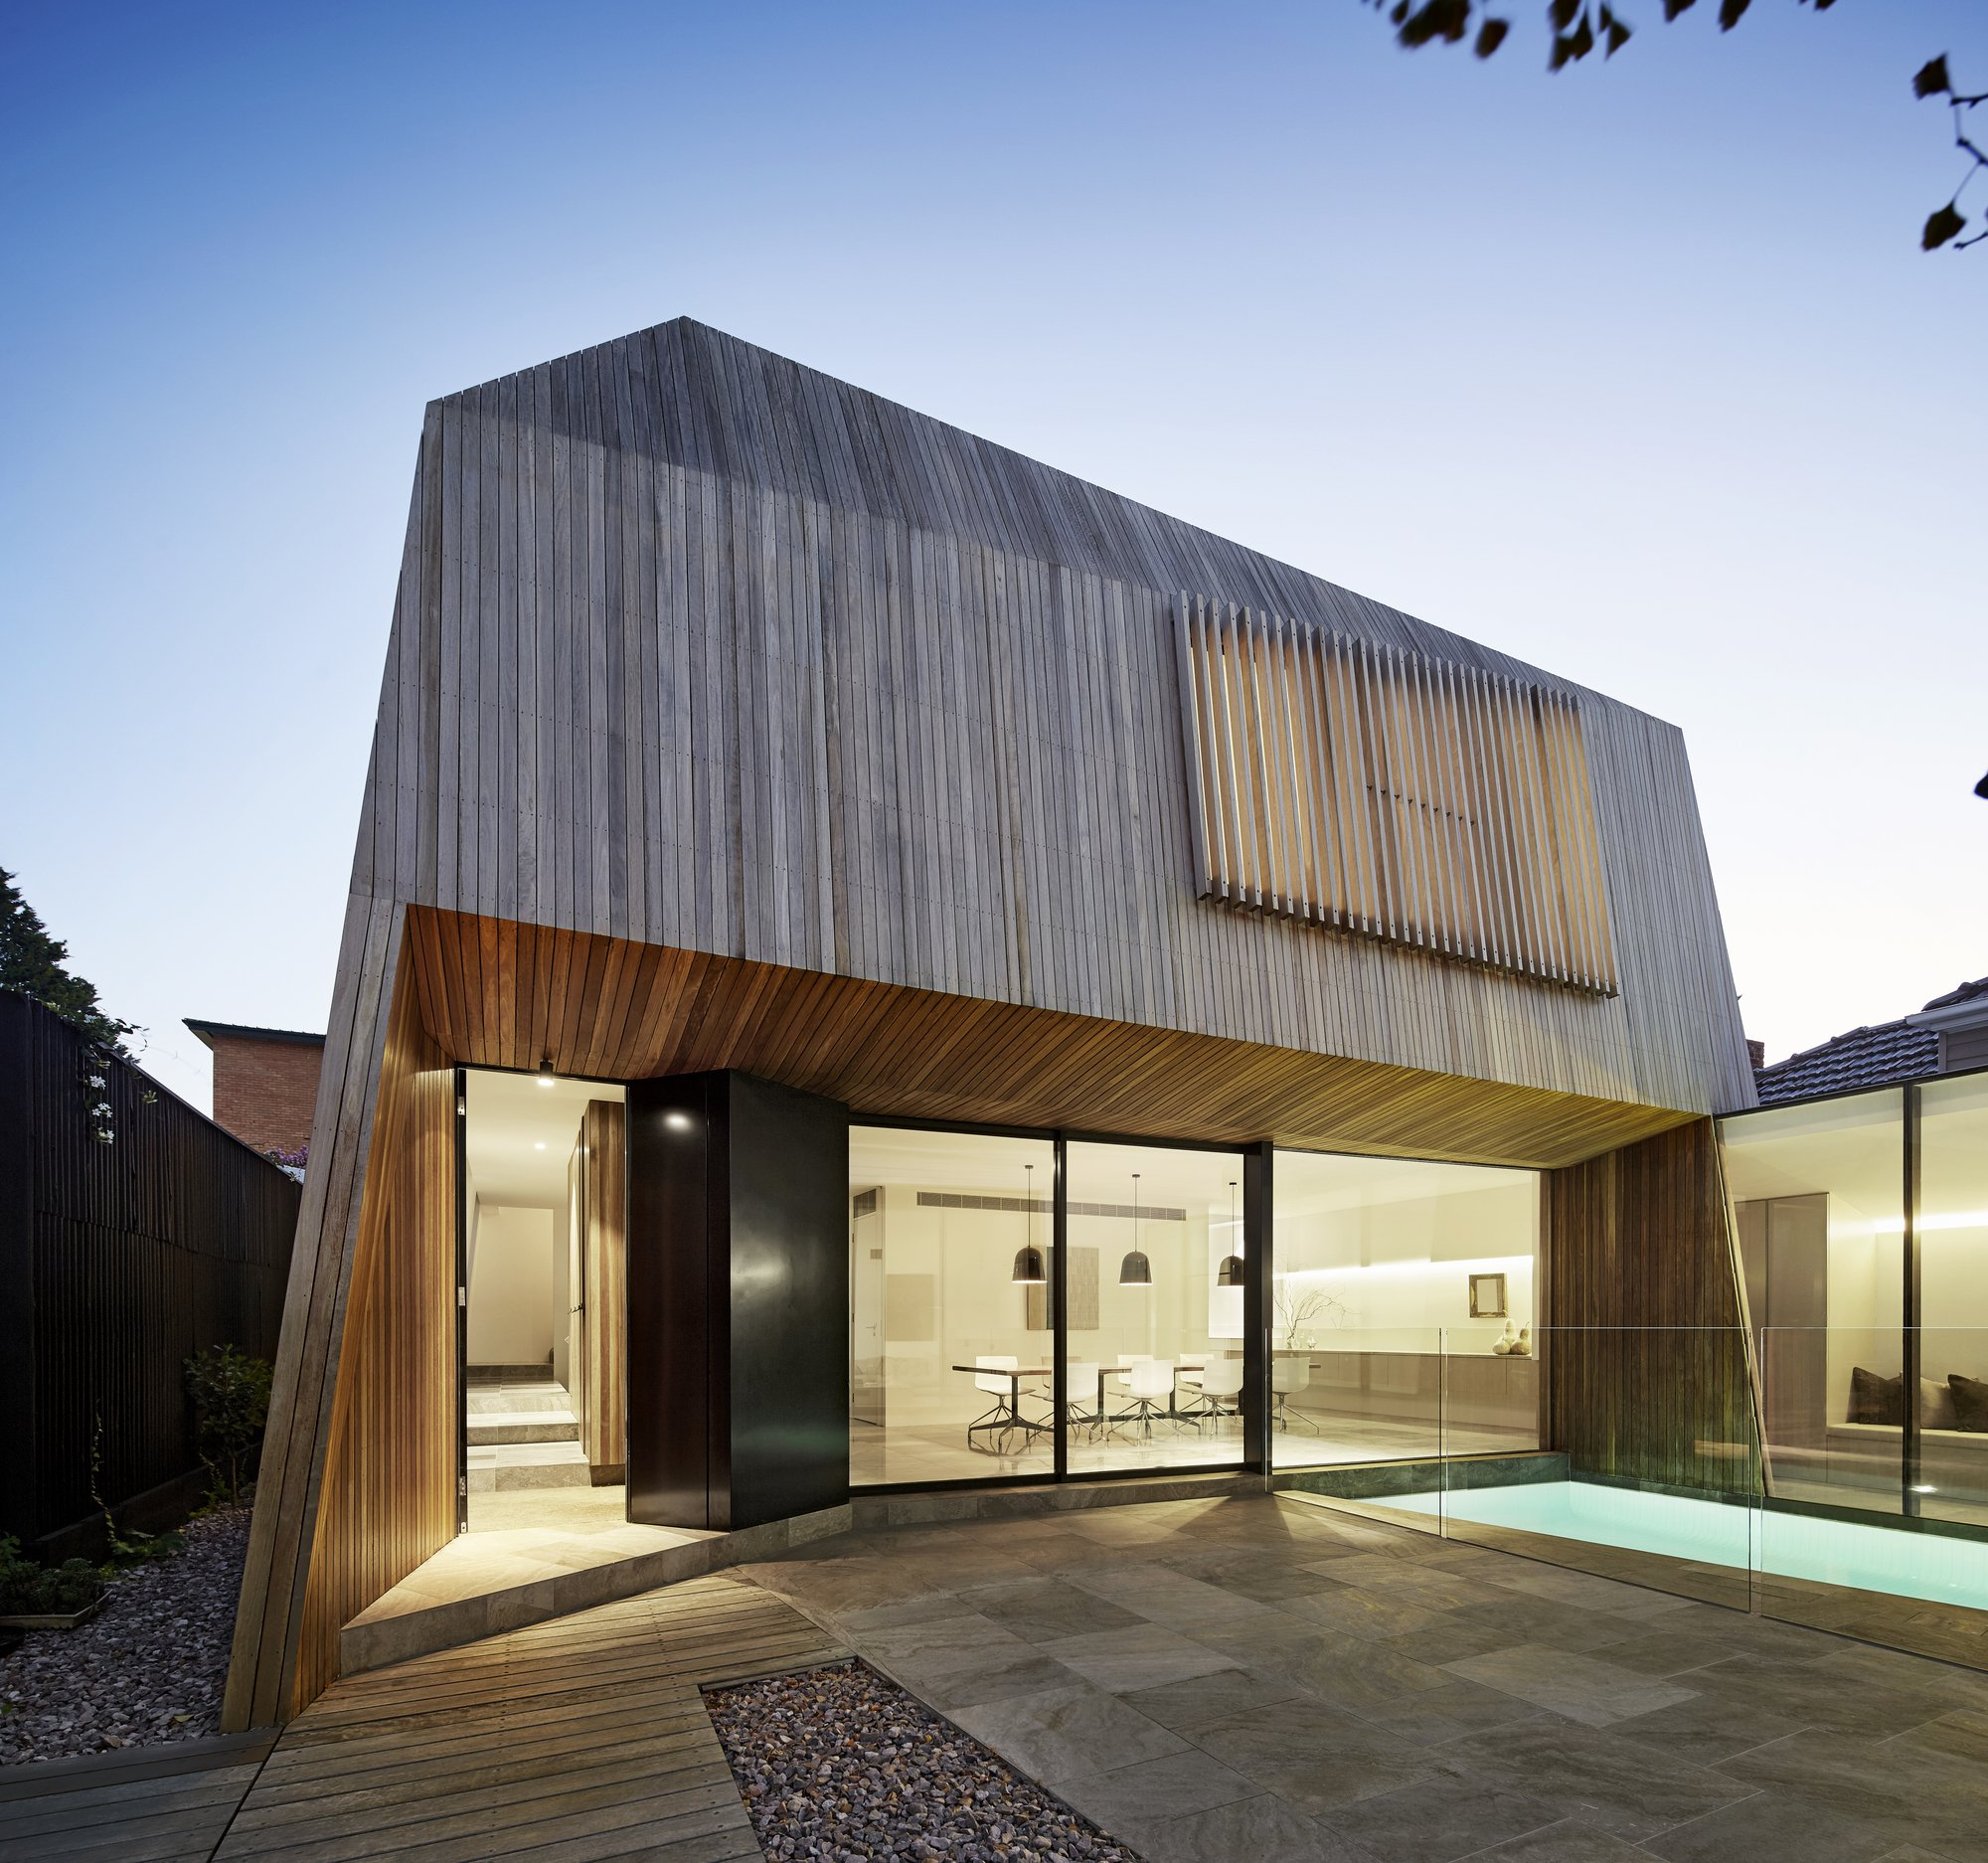 House 3 / Coy Yiontis Architects (22)